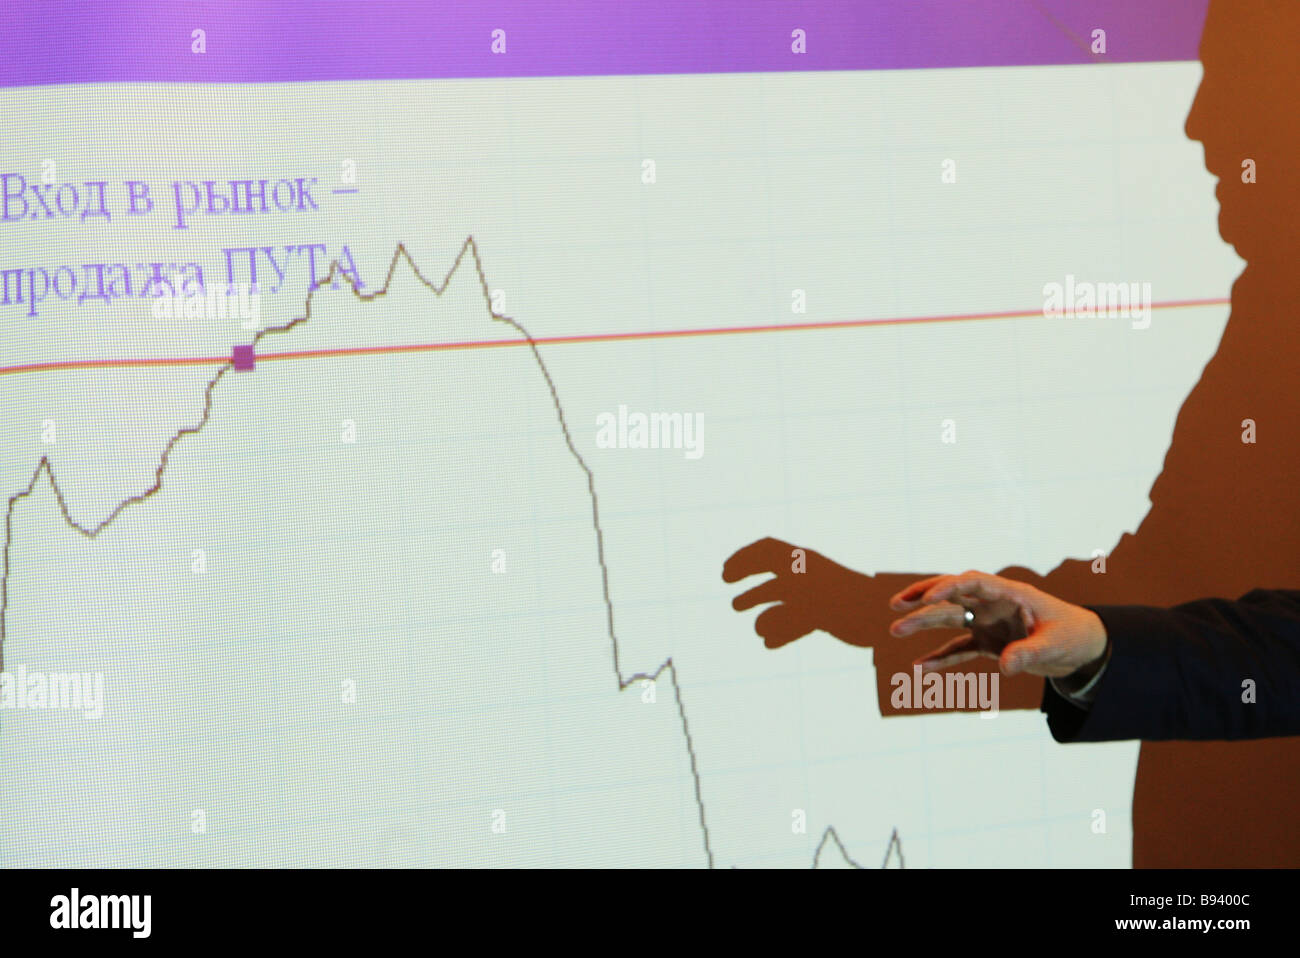 Conference A Hundred Cases of Russian Business le Meridien Moscow Country Club - Stock Image